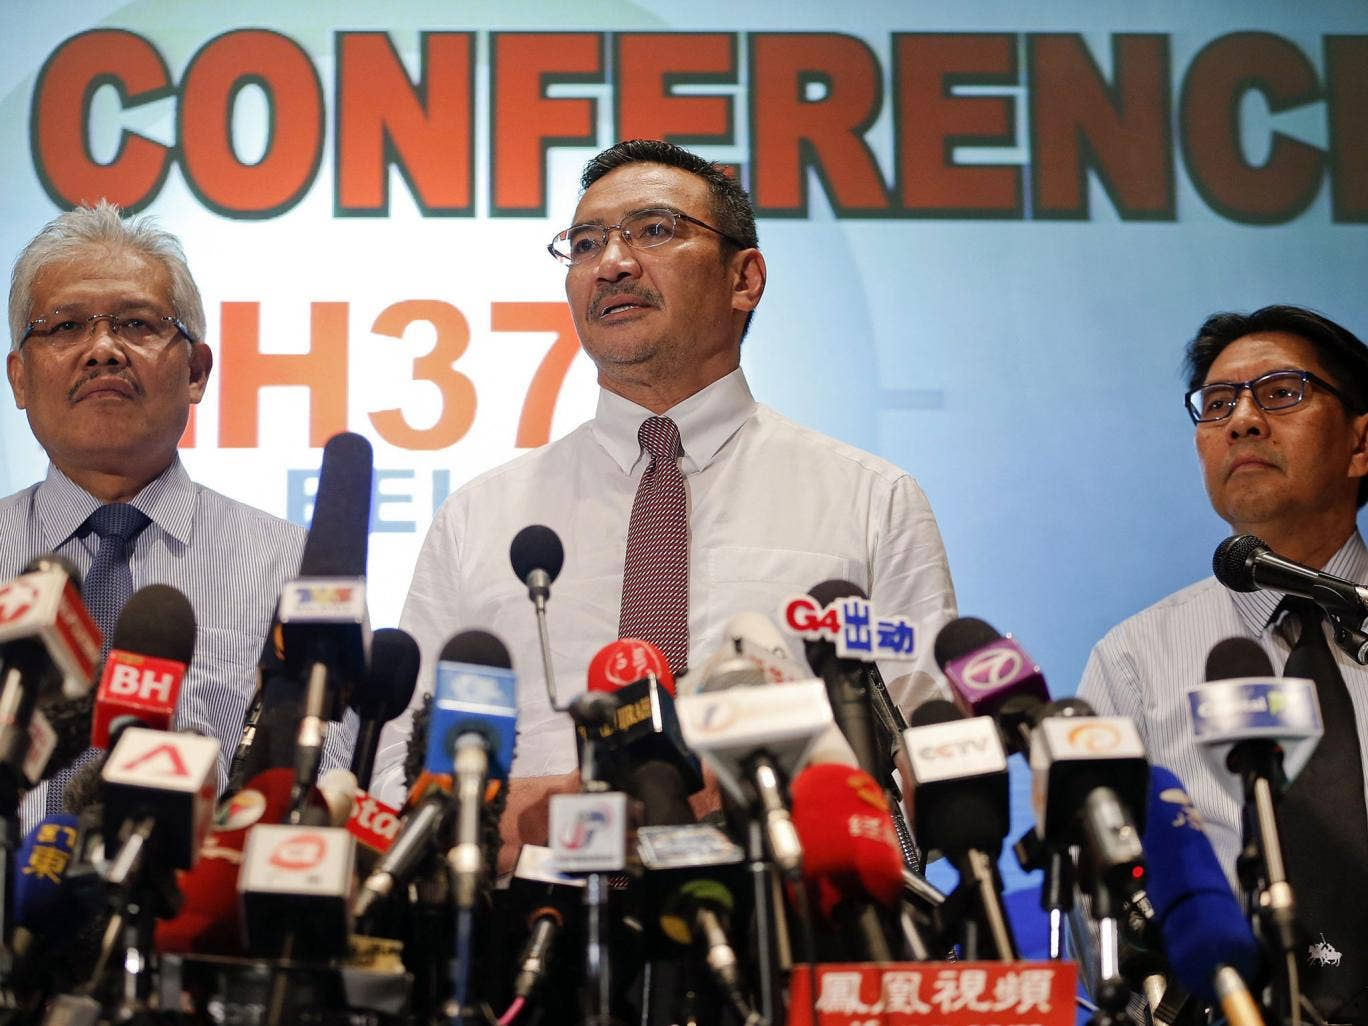 Malaysia's acting Transport Minister Hishammuddin Hussein (C) is accompanied by Deputy Foreign Minister Hamzah Zainudin (L) and Department of Civil Aviation's Director General Azharuddin Abdul Rahman as he addresses reporters about the missing Malaysia Ai